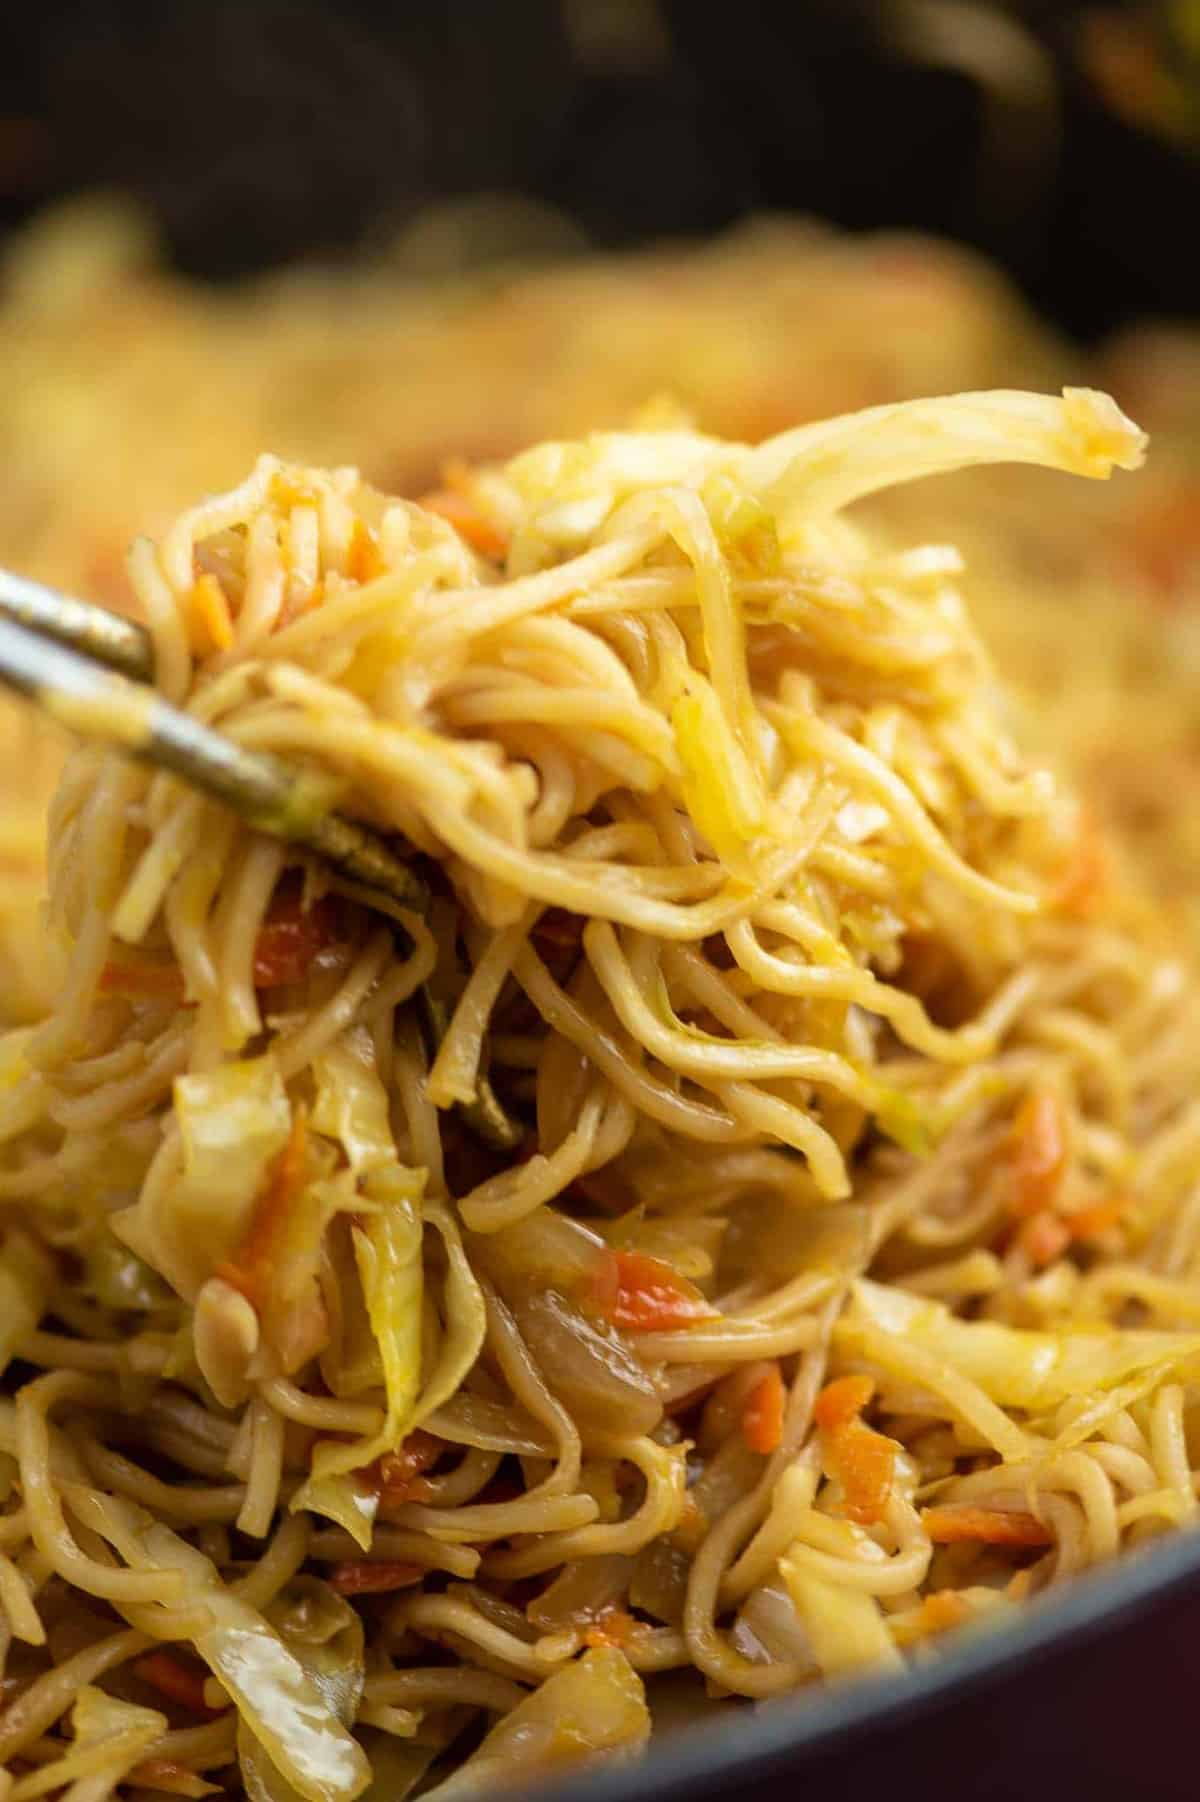 ramen noodles, cabbage, and carrots in a dish